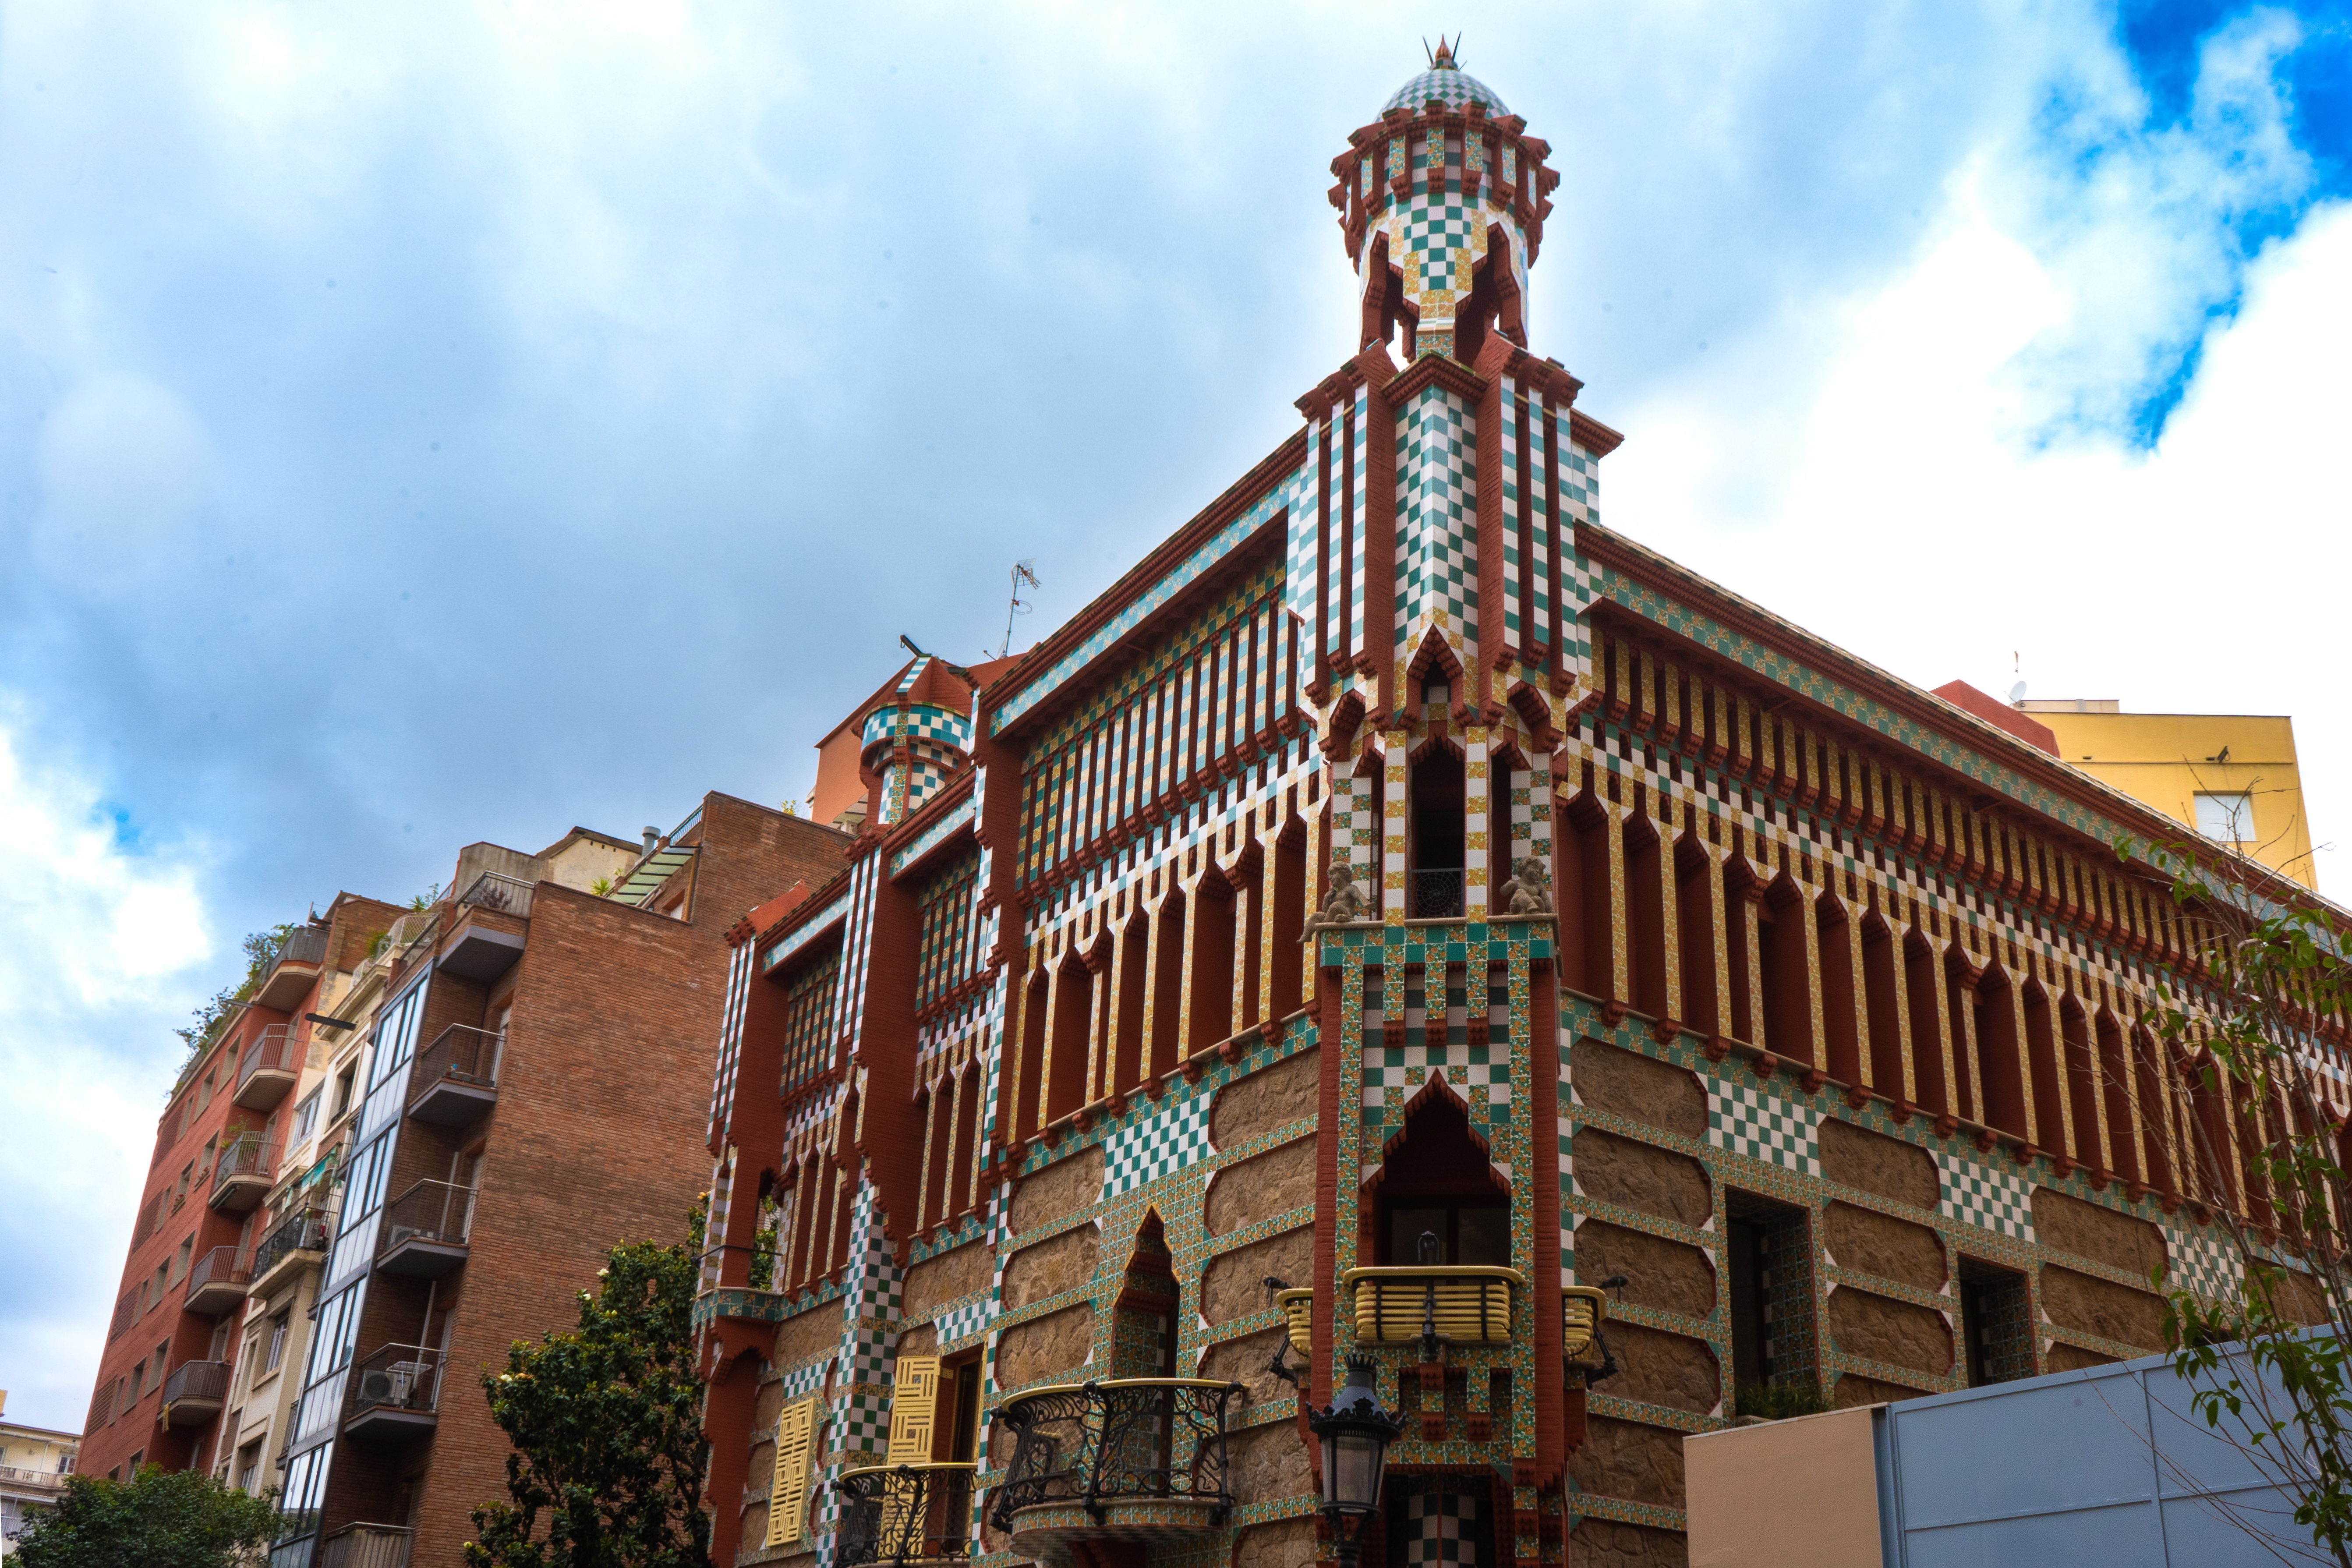 The exterior of Casa Vicens a colorful gaudi building